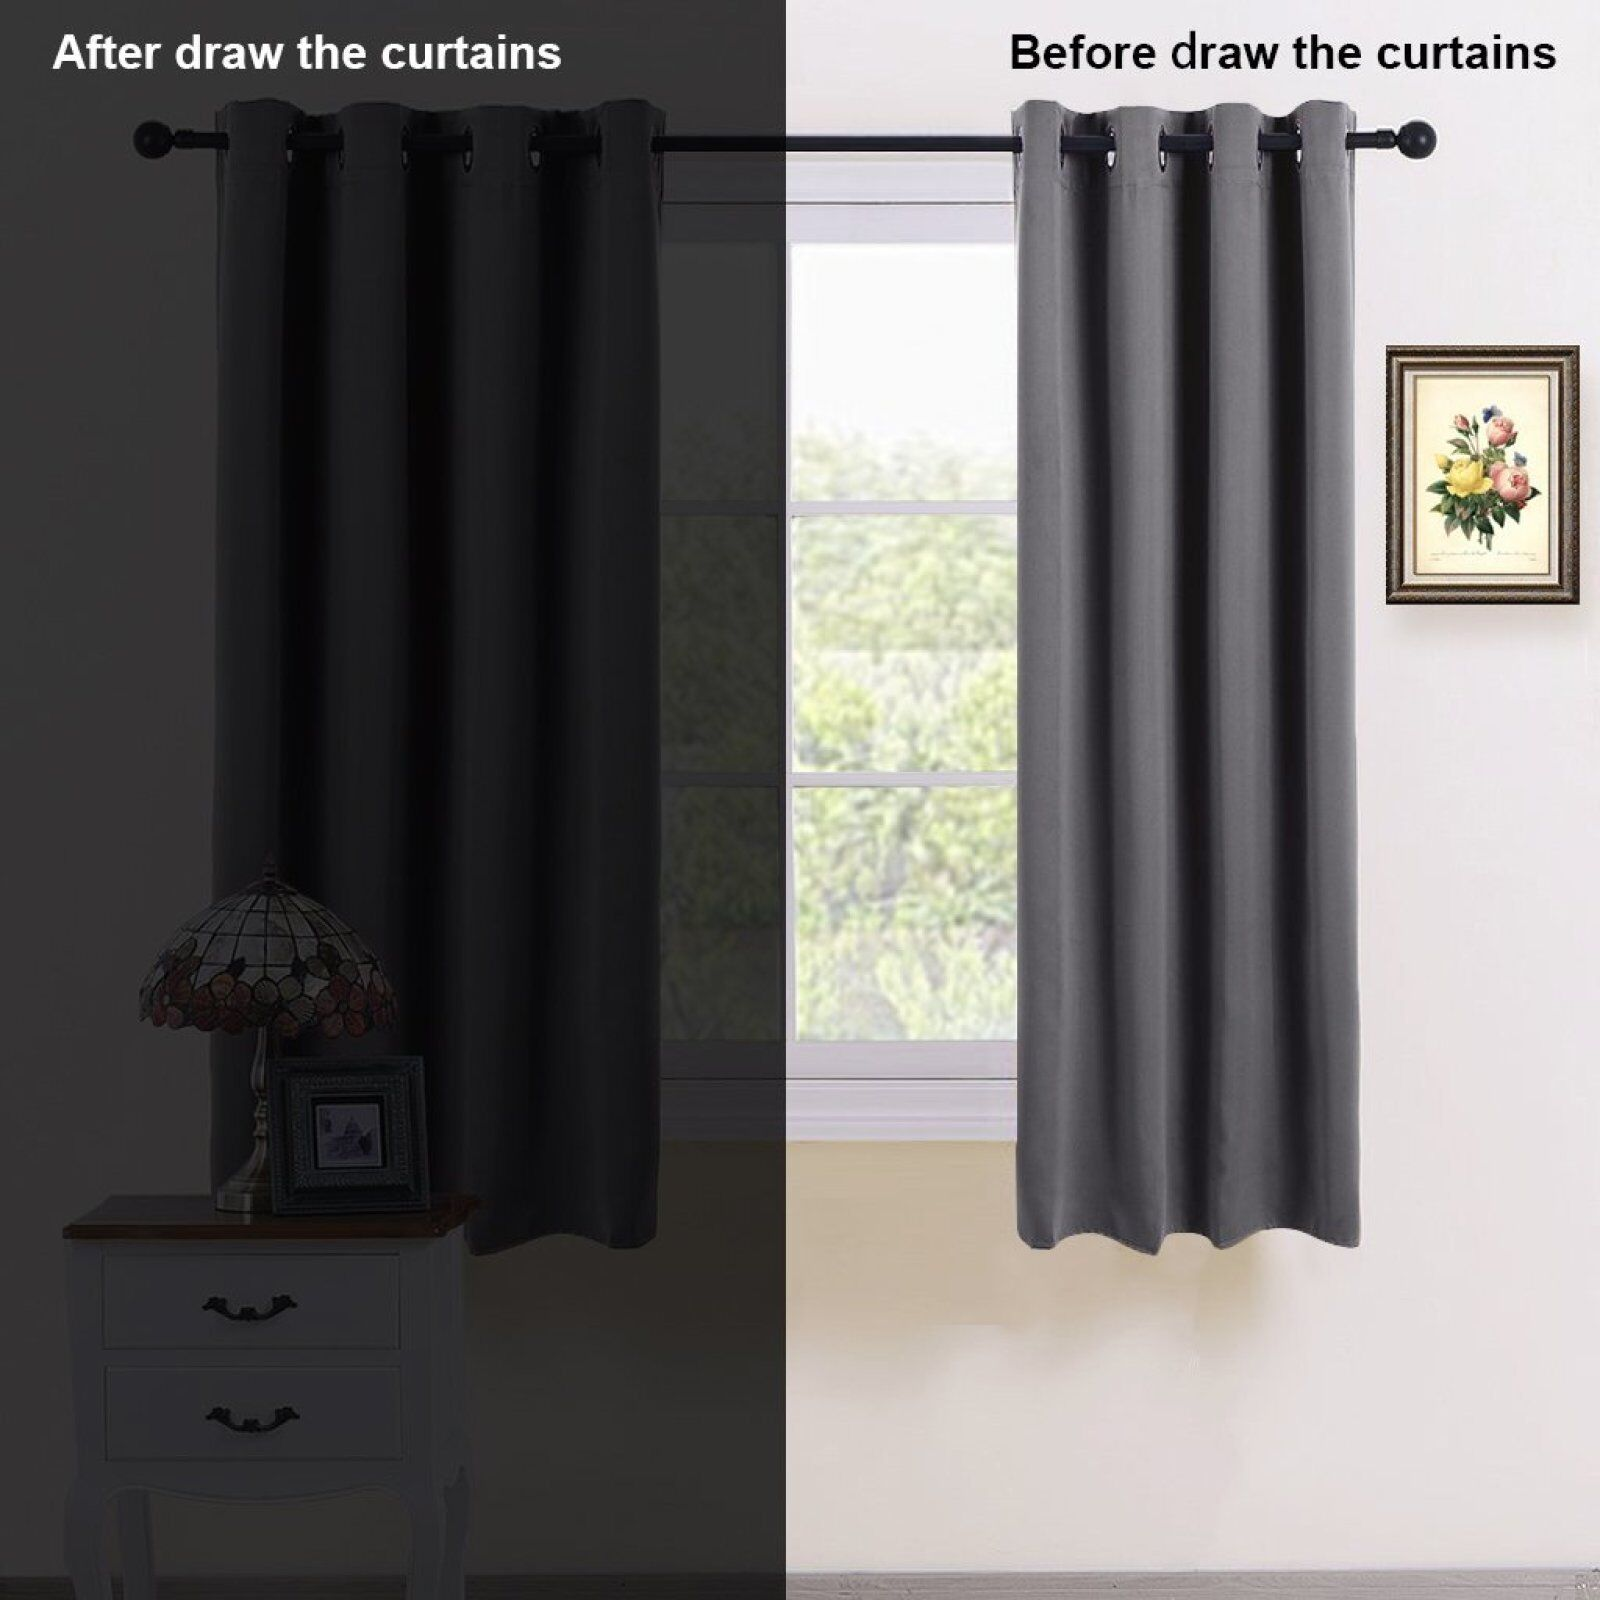 Pair Eyelet Blackout Curtains Thermal Insulated Curtain Kids Bedroom Dark Panel 602668837006 Ebay